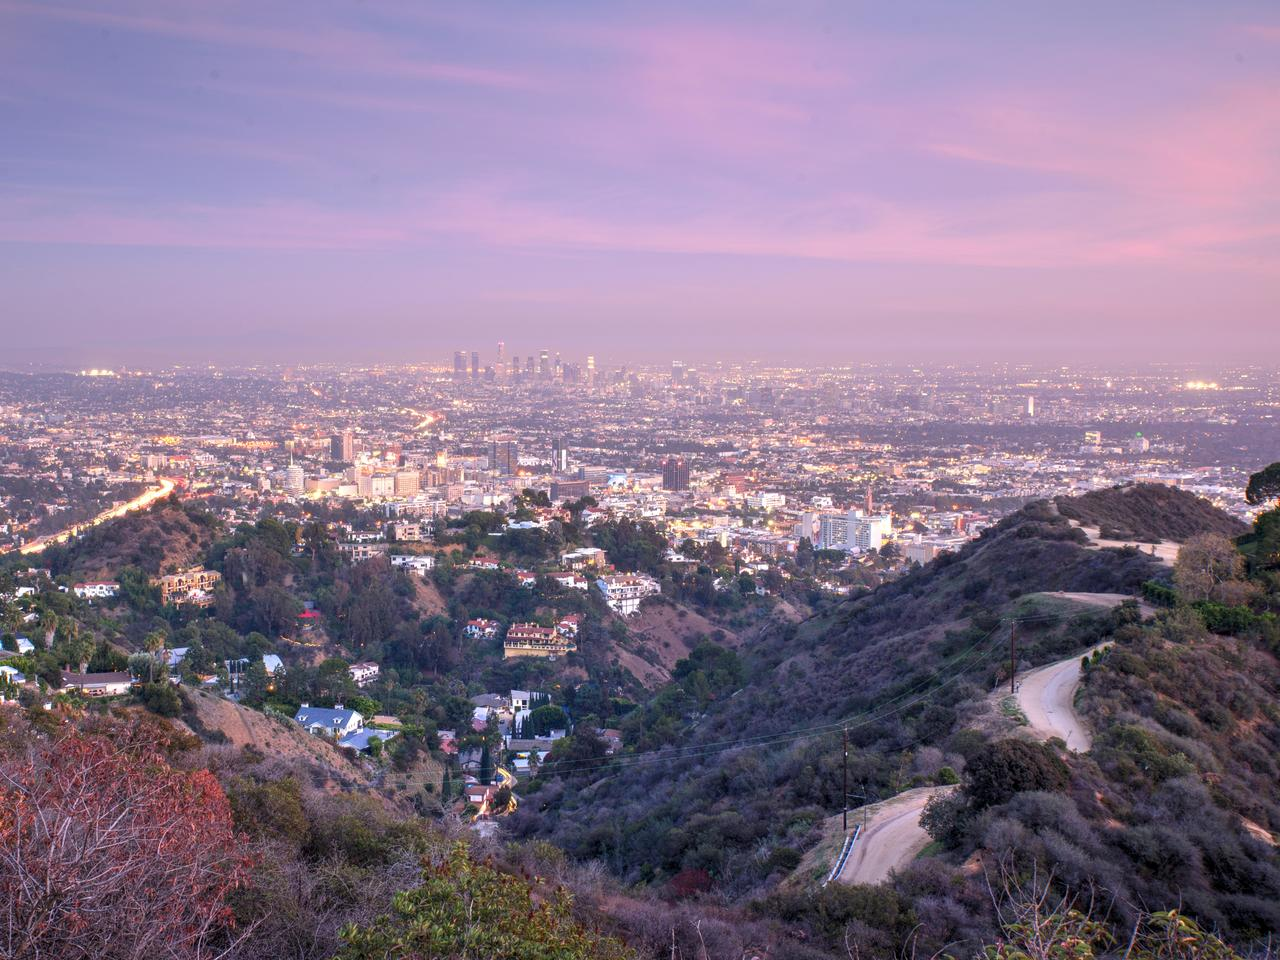 Aerial view of Los Angeles from Runyon Canyon park.